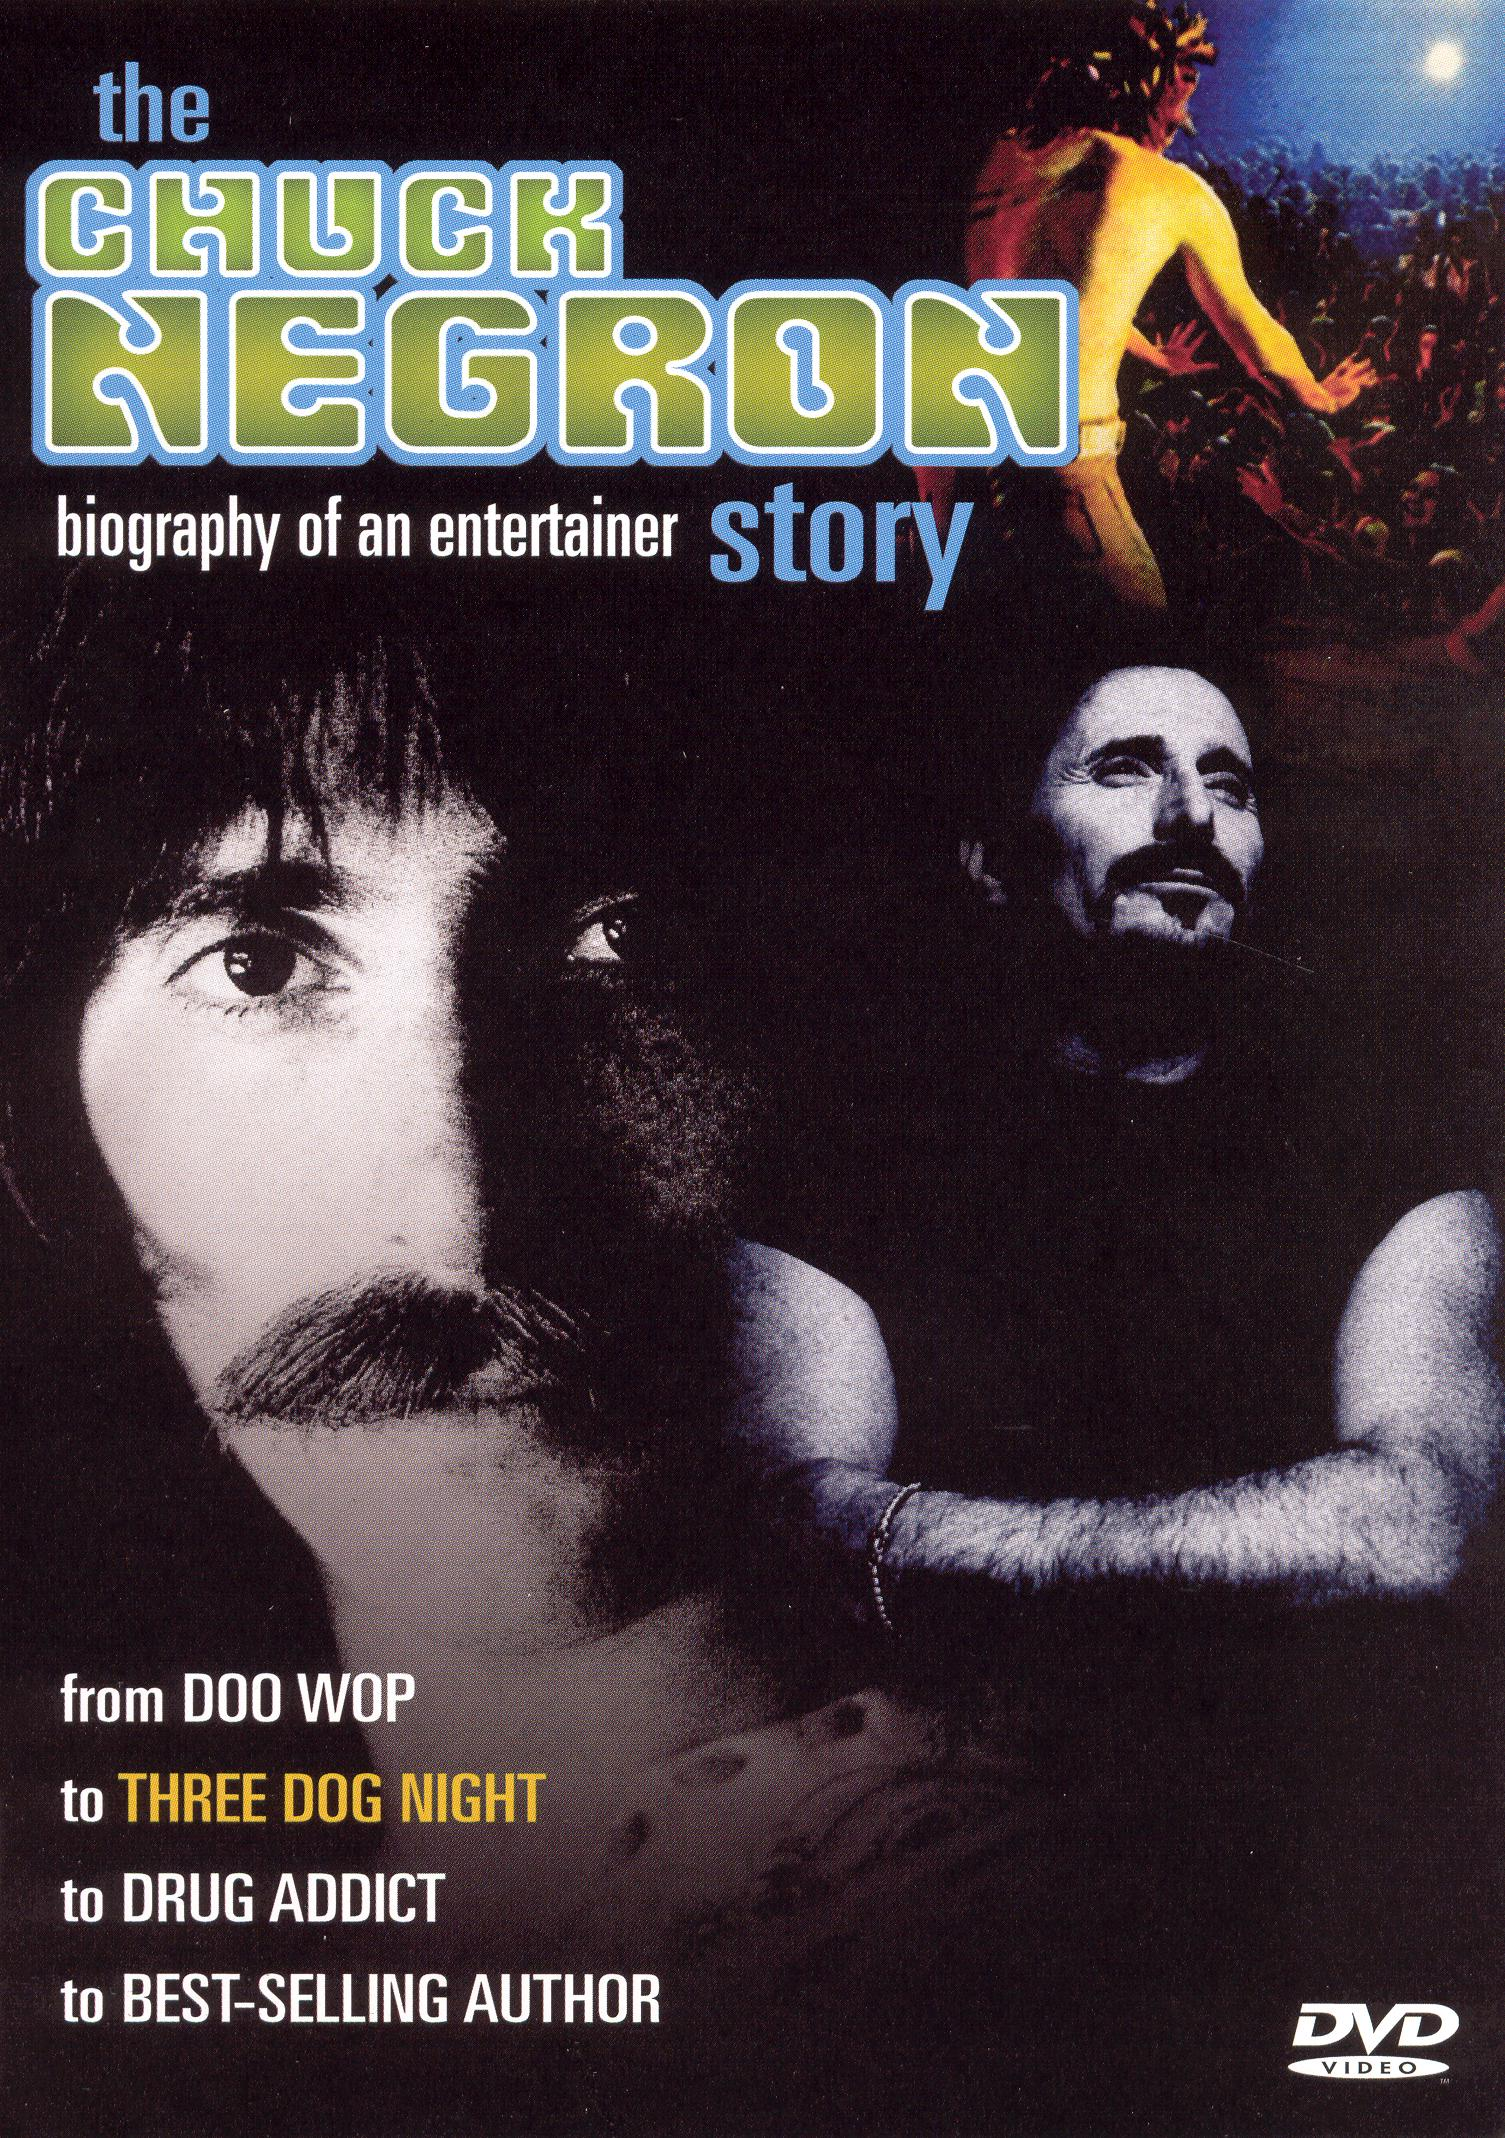 The Chuck Negron Story